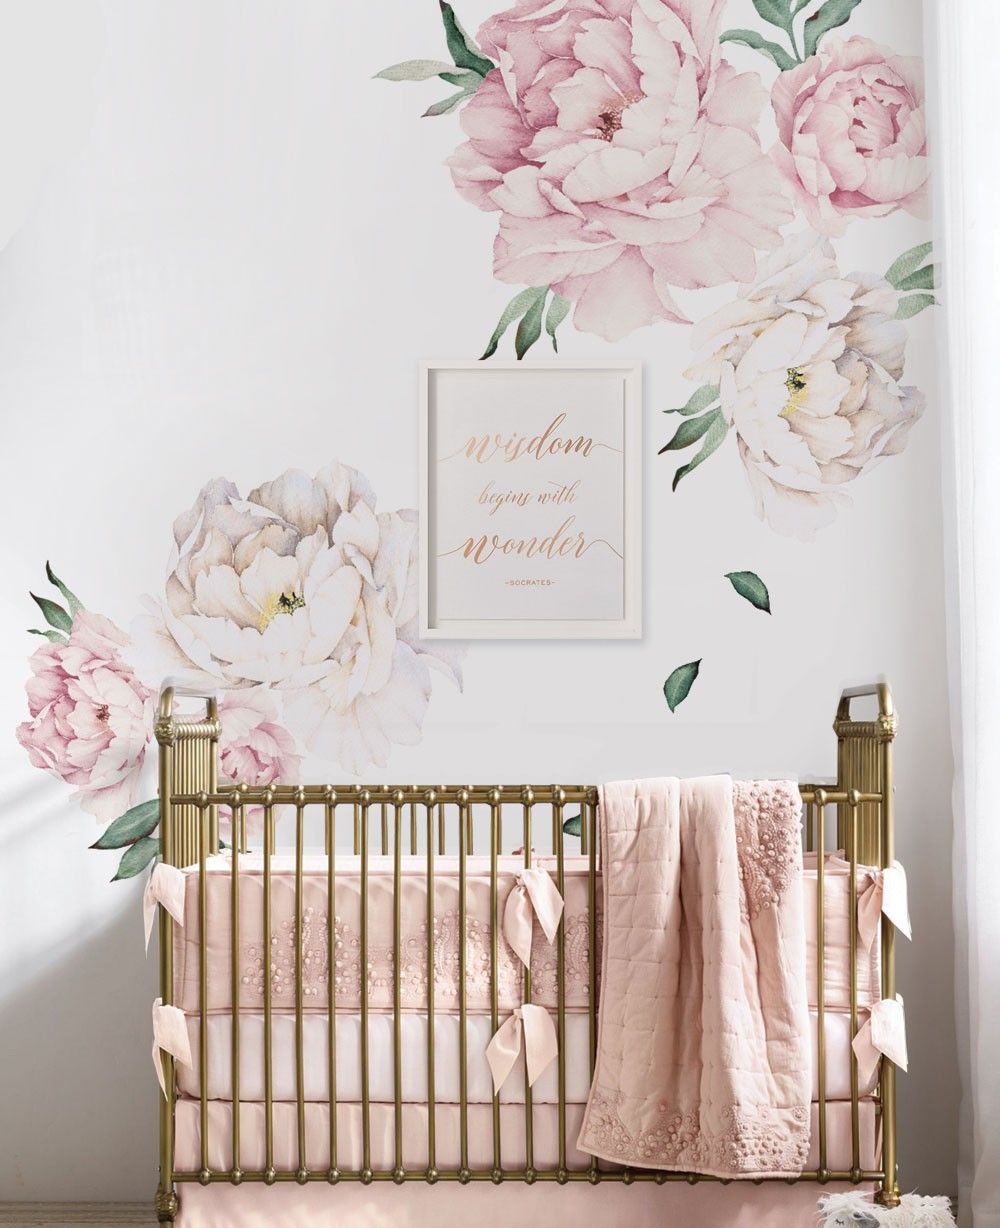 Peony Flowers Wall Sticker, Watercolor Peony Wall Stickers